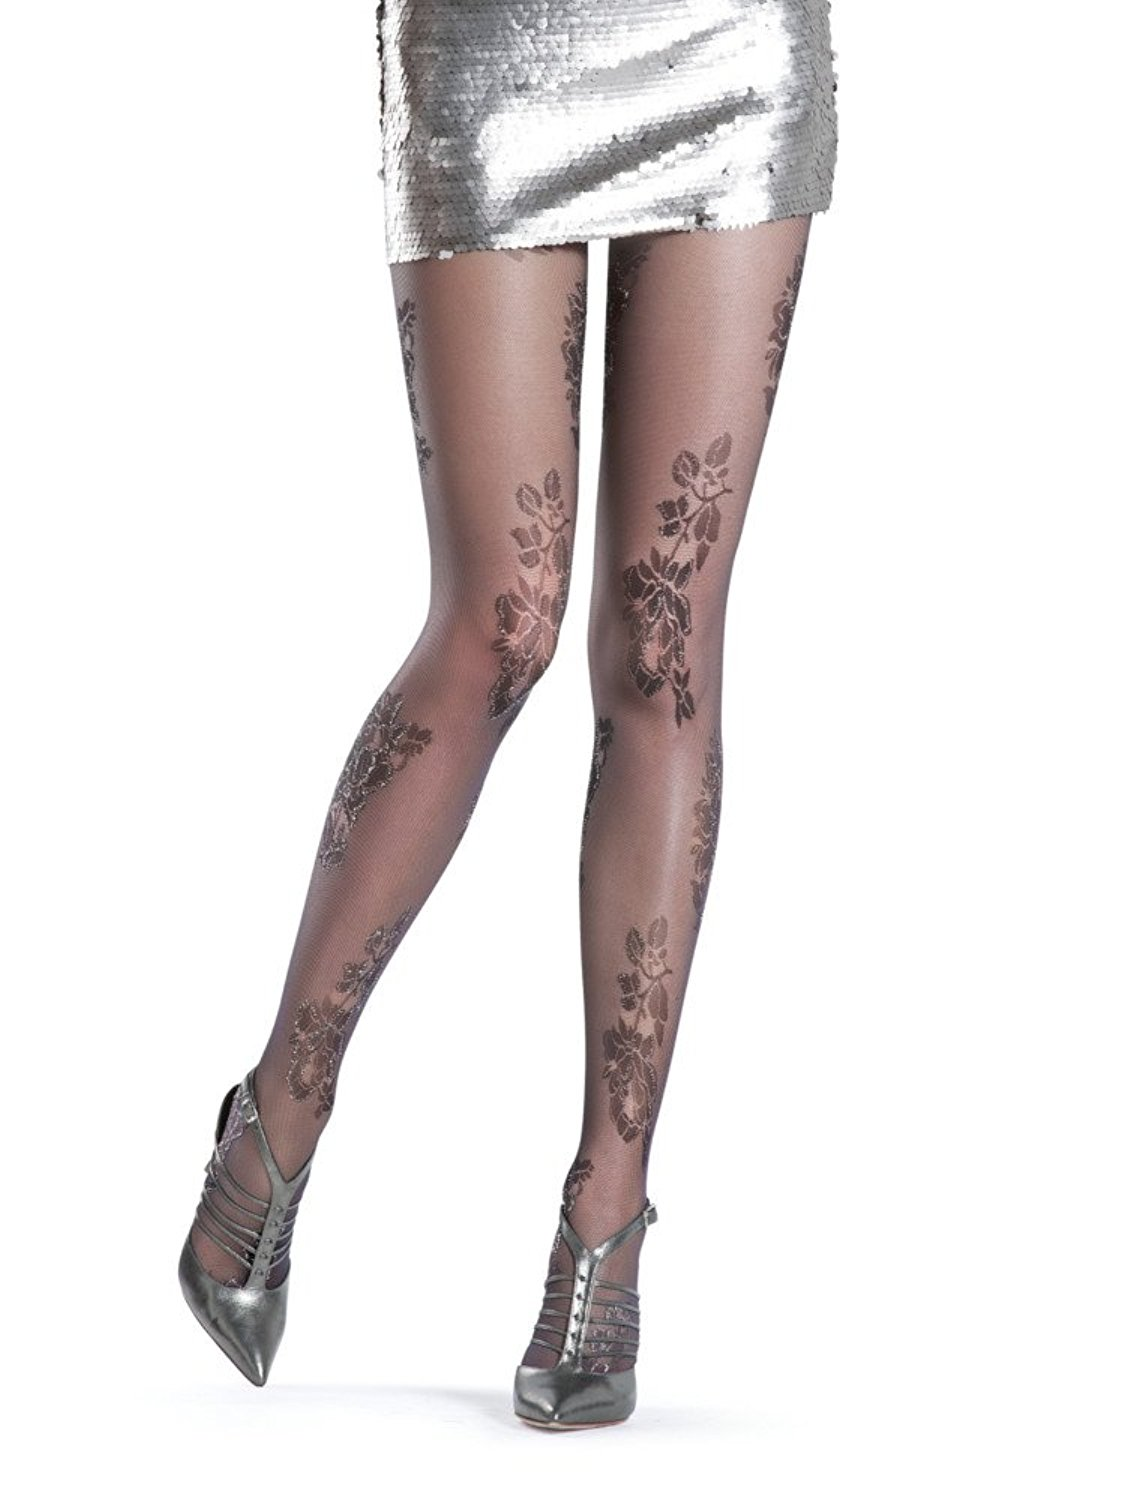 8f17c42e239 Get Quotations · Oroblu Thea Sparkle Tights - Hosiery Outlet